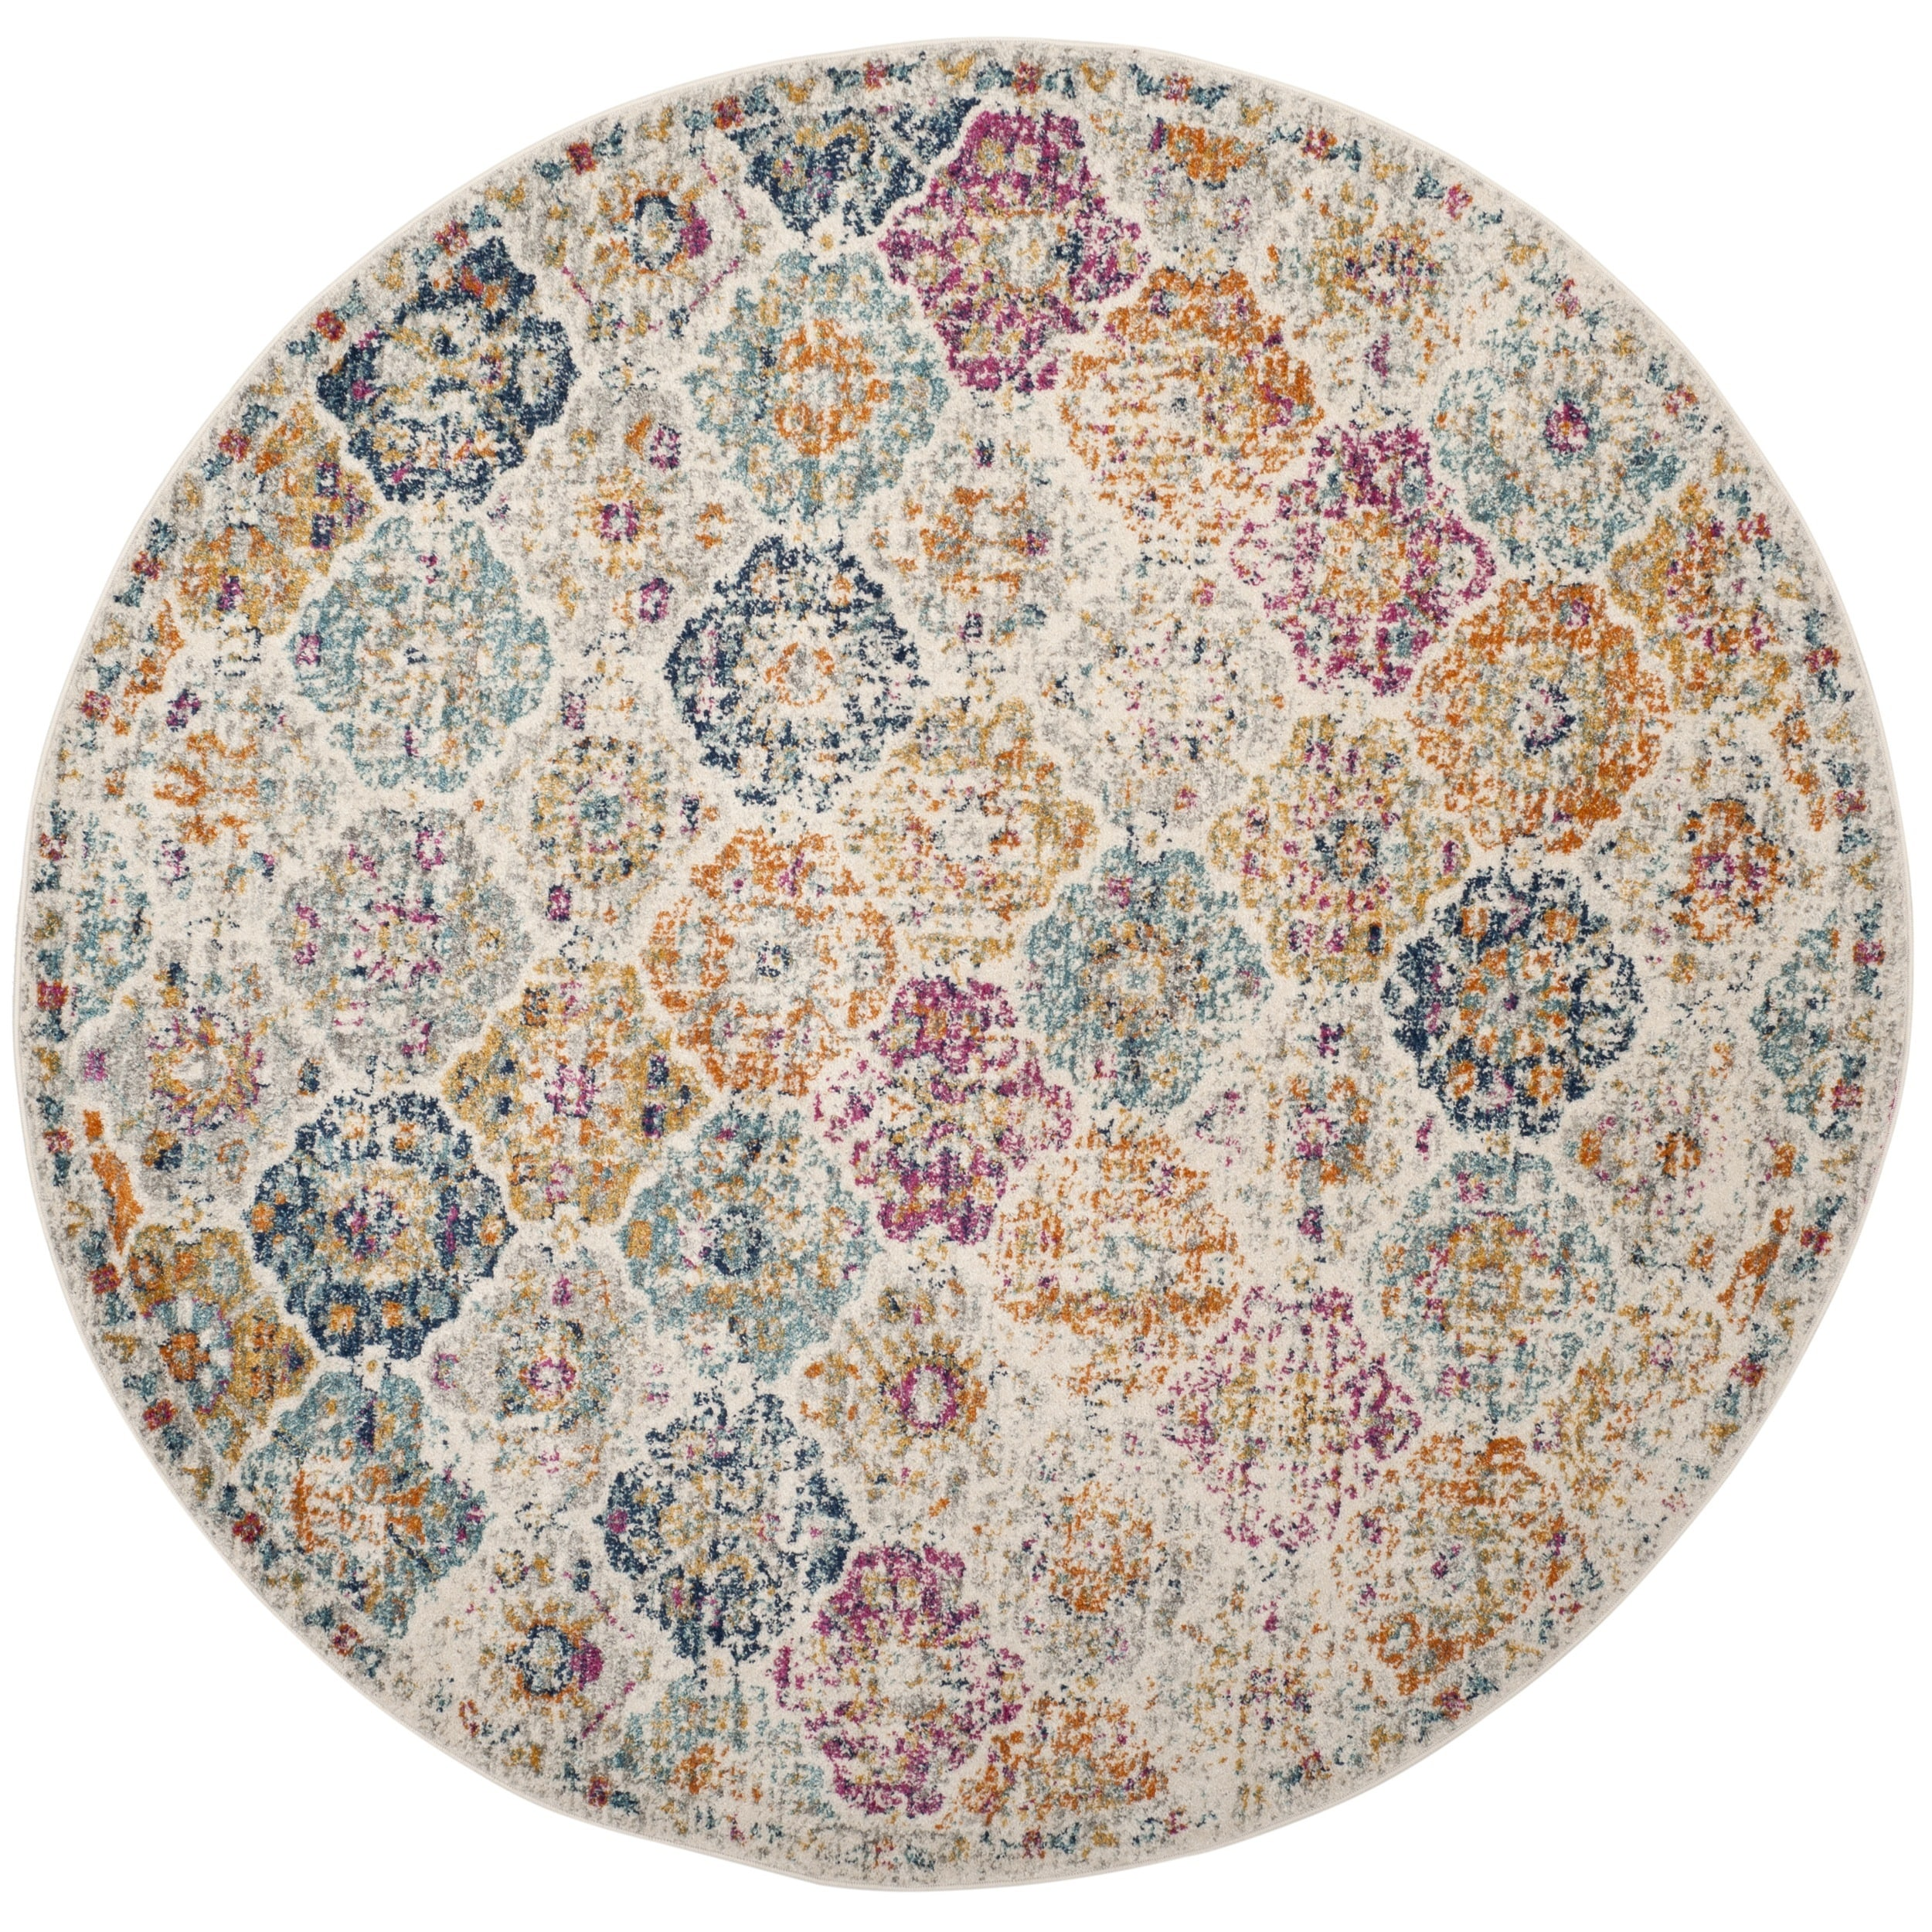 for by white room foot sea and circular life square dining large wool living shop rug contemporary rugs plush small orange size gray area stores of circle awesome round